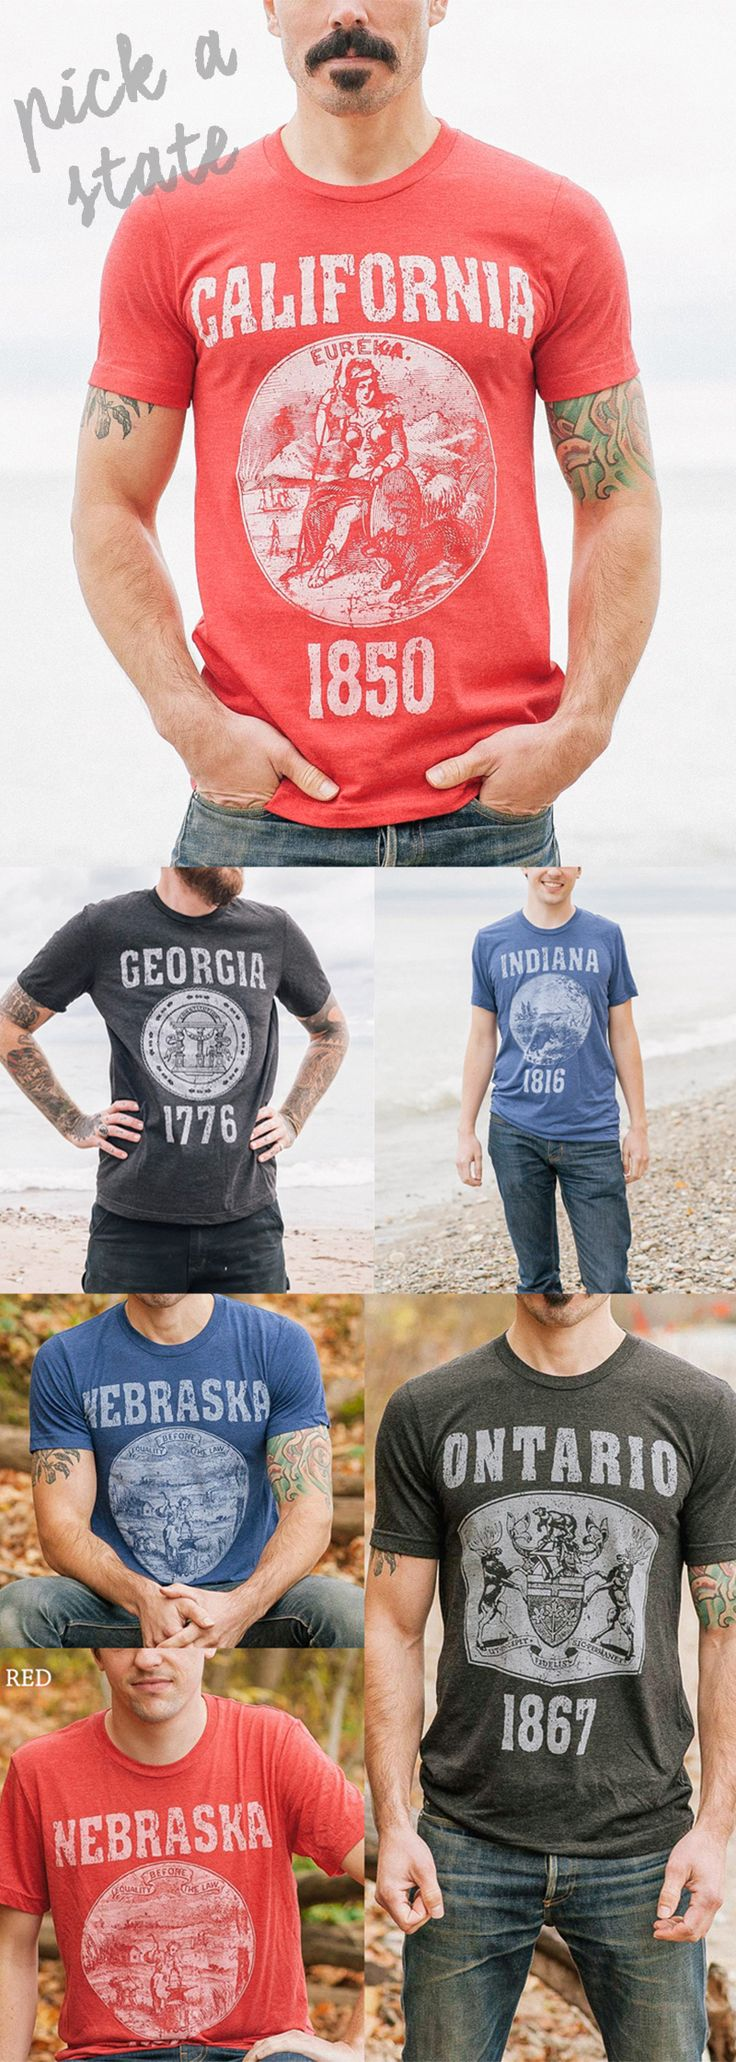 An ode to America and all 50 of its great states, this vintage-inspired tee is adorned with the official seal for the state of your choosing. Each historical emblem is printed front and center on super soft triblend fabric, and the tees are labeled with the state name and the year it was founded in blocky collegiate-style letters. The soft ink blends right into the fabric, for a comfy tee that reps the Midwest, one of the original colonies or your favorite state from sea to shining sea.